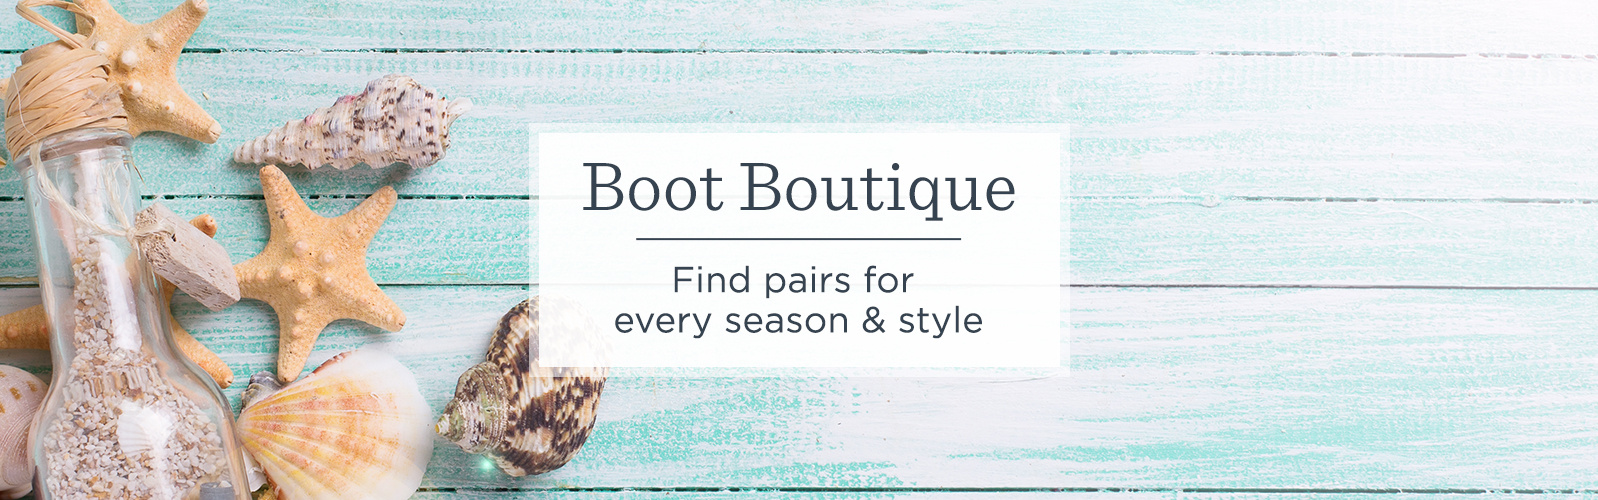 Boot Boutique. Find pairs for every season & style